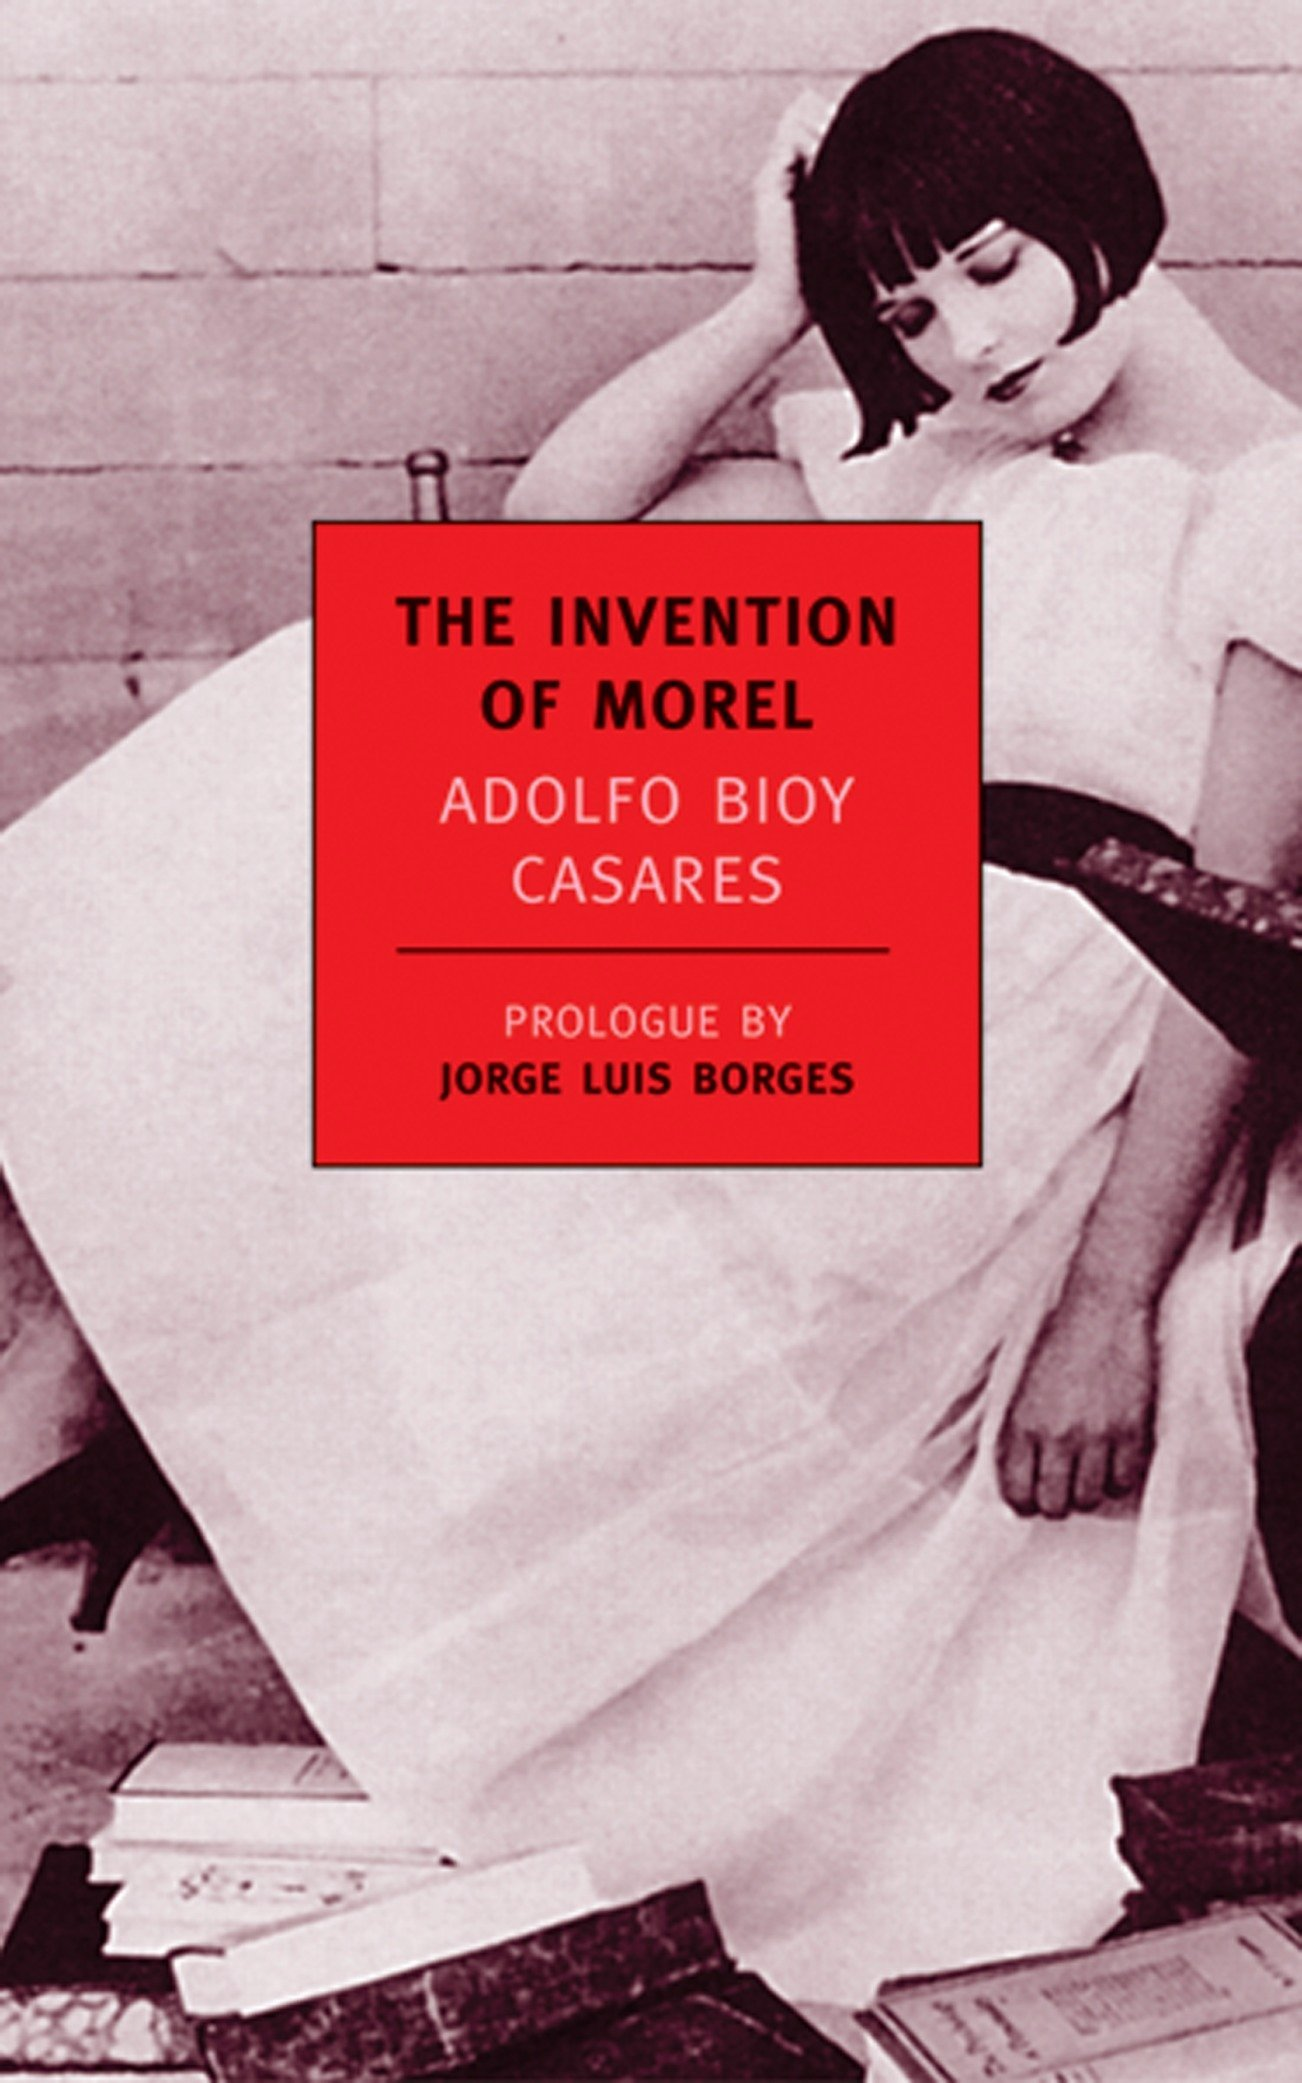 Download The Invention Of Morel By Adolfo Bioy Casares